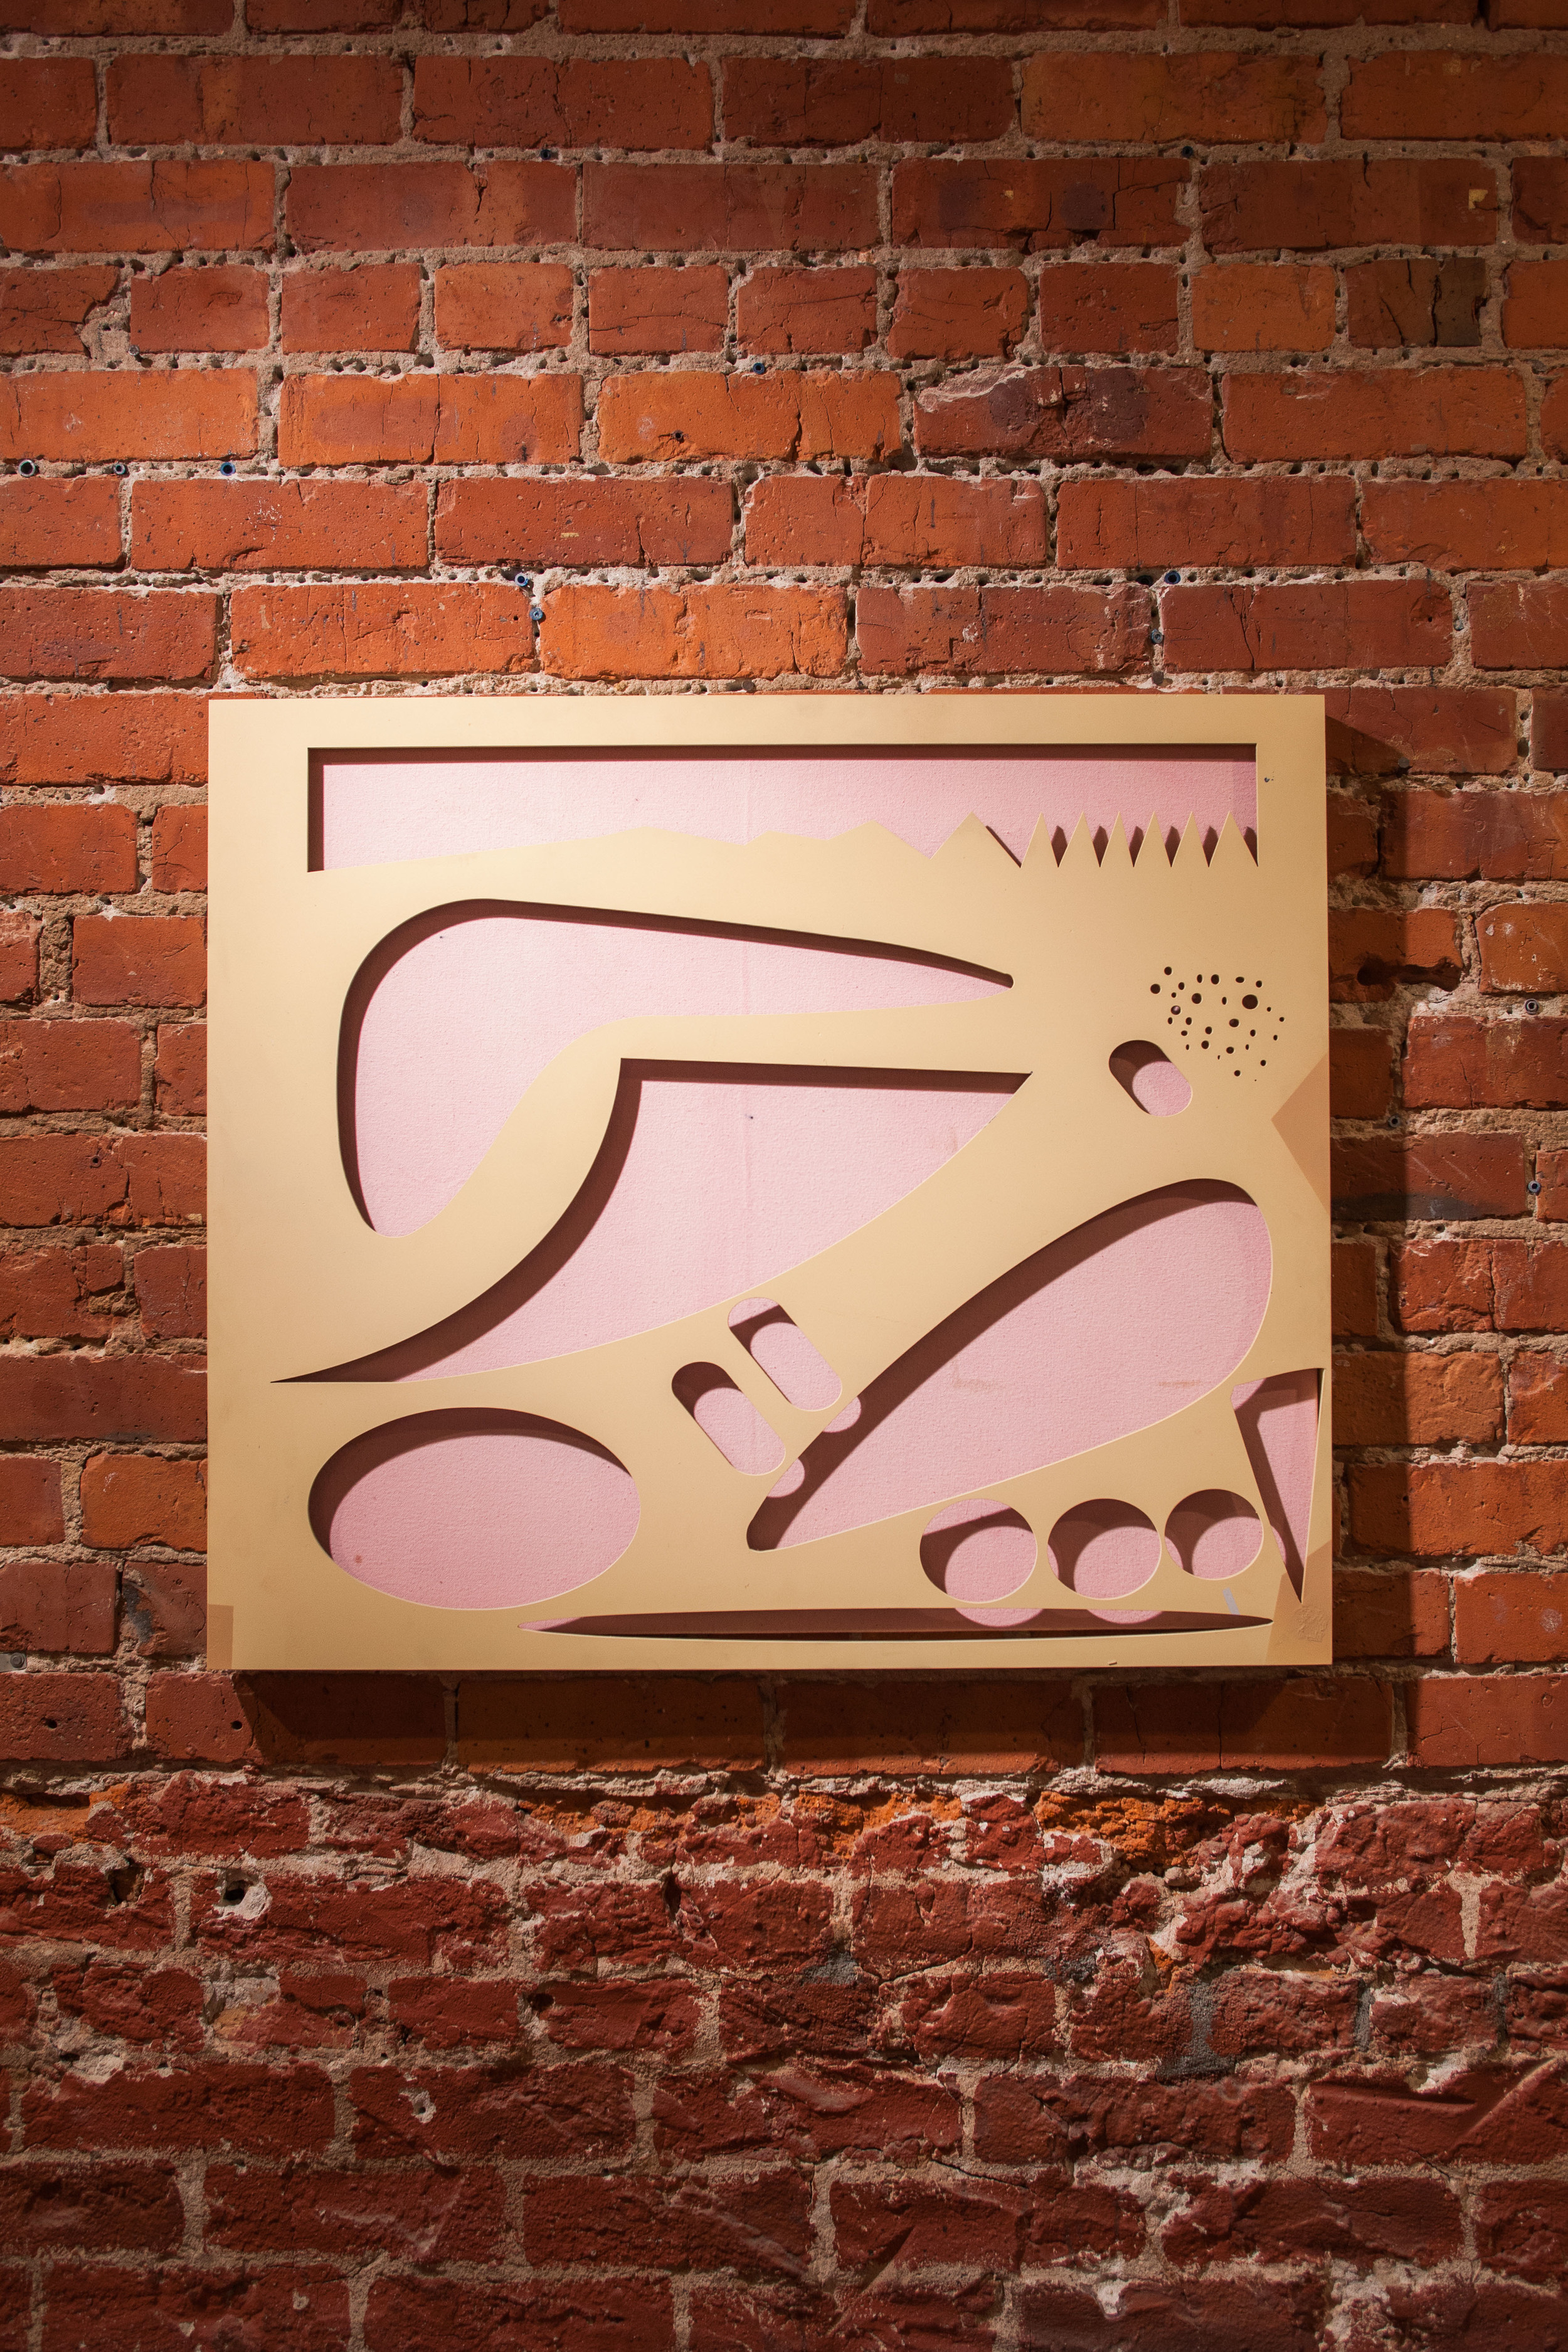 Micah Wood,  Morning Change (Out) , 2015  Water jet cut steel, acrylic, flashe, canvas, 30 x 26 x 1 1/2 in.